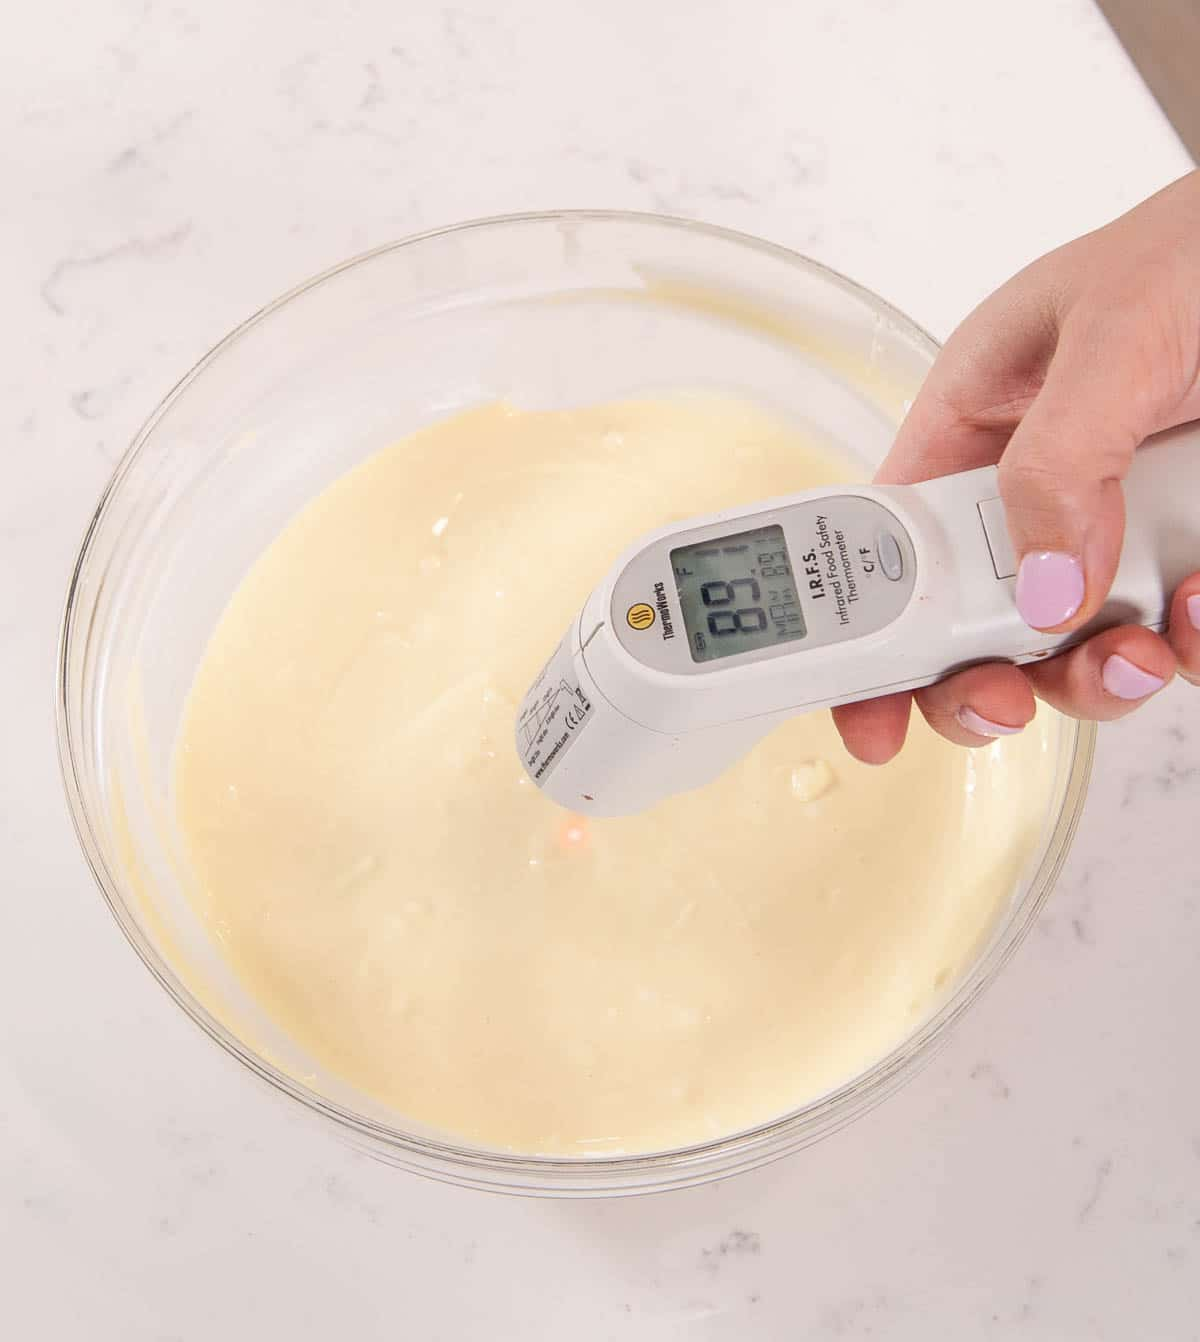 white thermometer over bowl of white chocolate